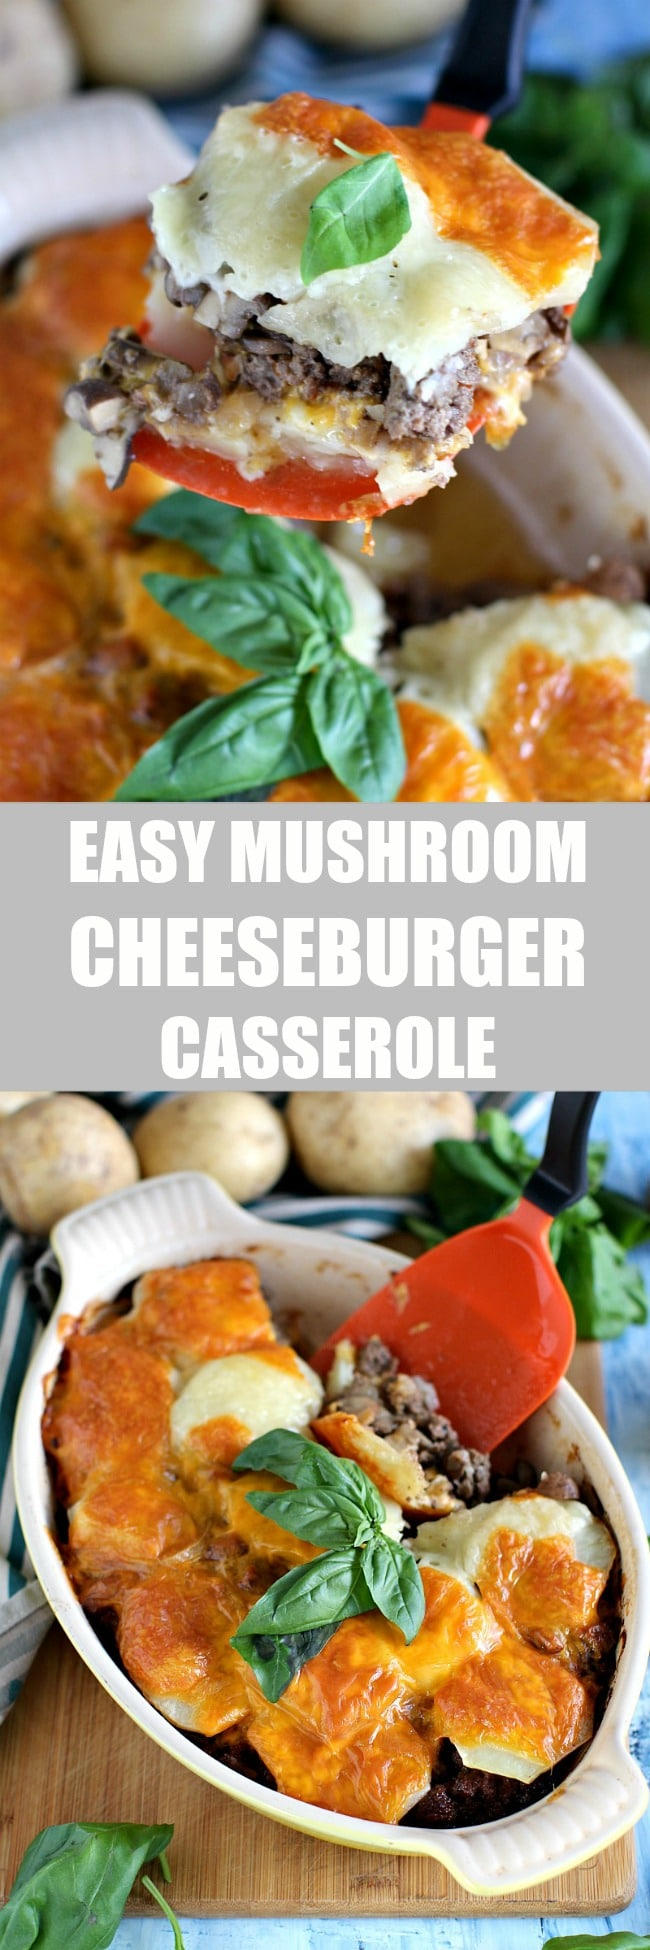 Gluten Free Mushroom Cheeseburger Casserole that is easy to make, filling and delicious, loaded with cheese and baked potato layers.